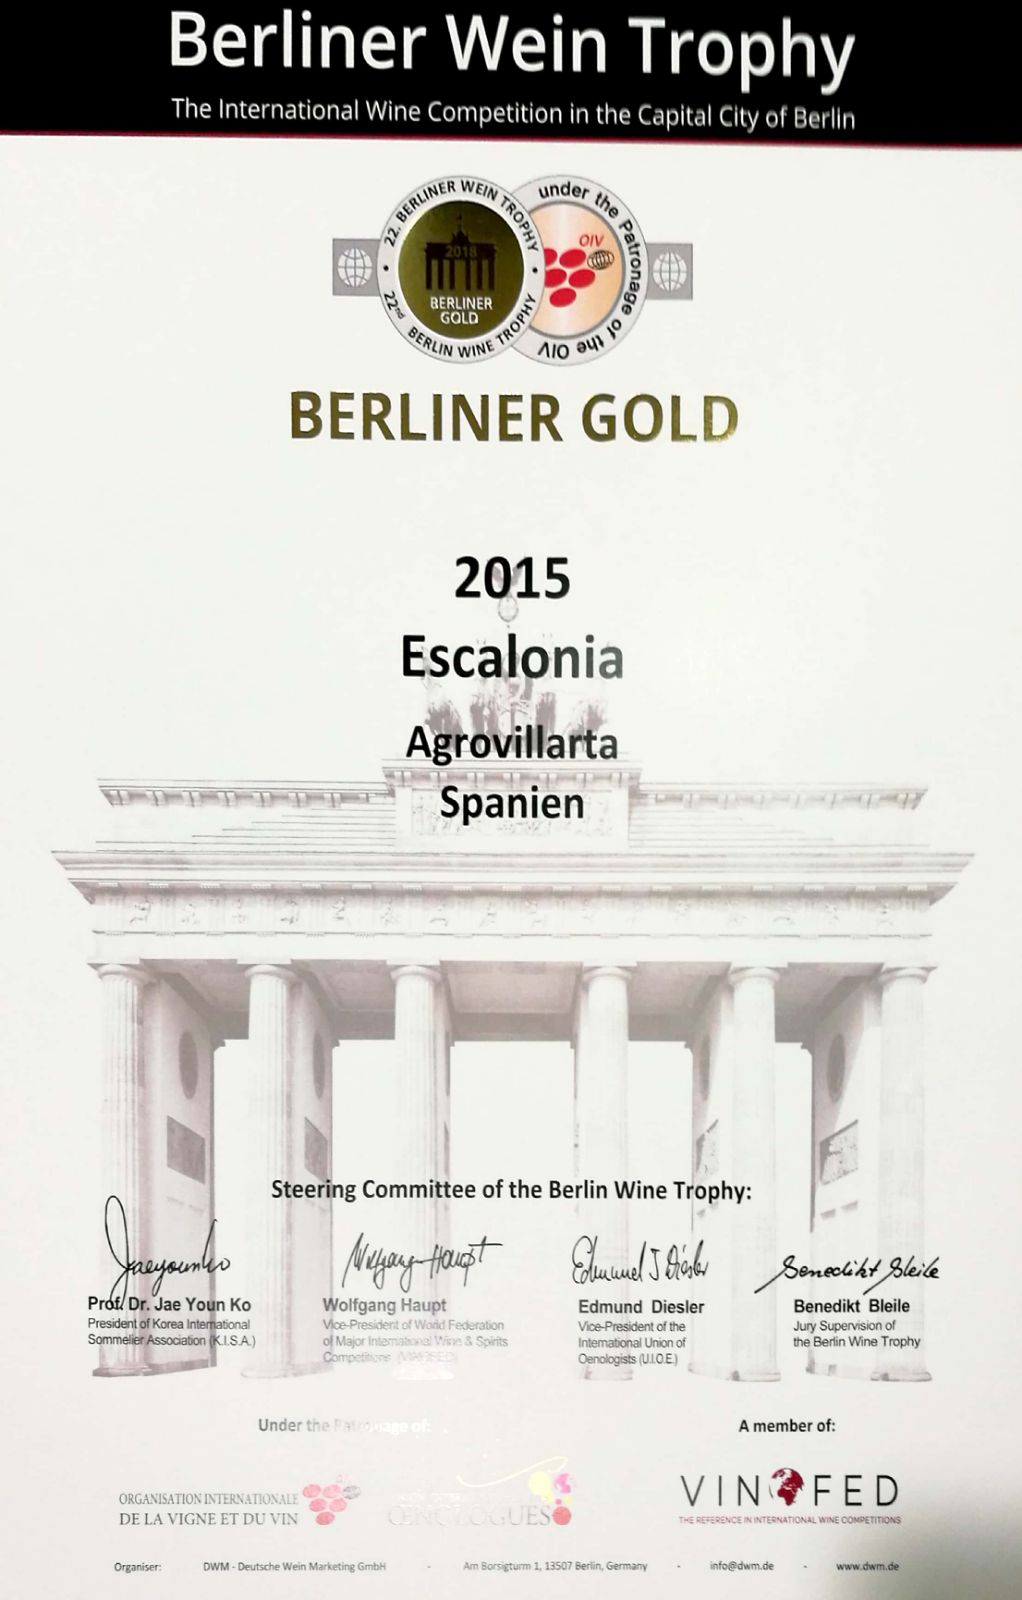 berliner.gold.2015.escalonia.jpeg